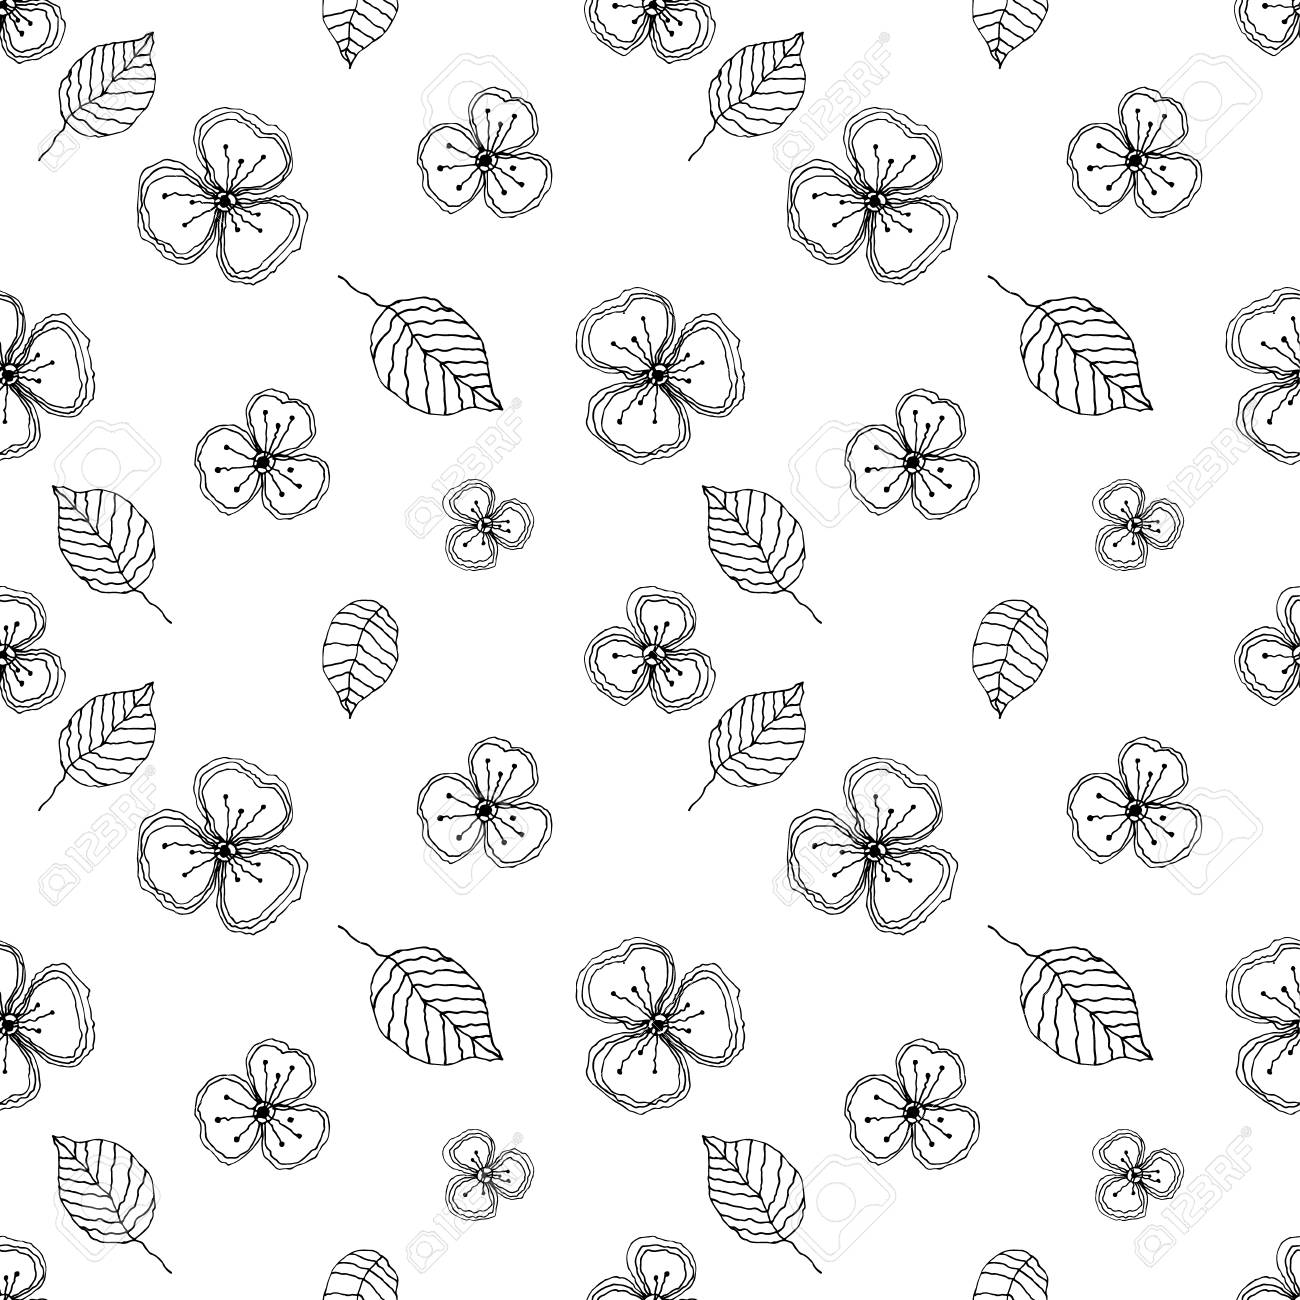 Seamless Vector Floral Pattern Black And White Hand Drawn